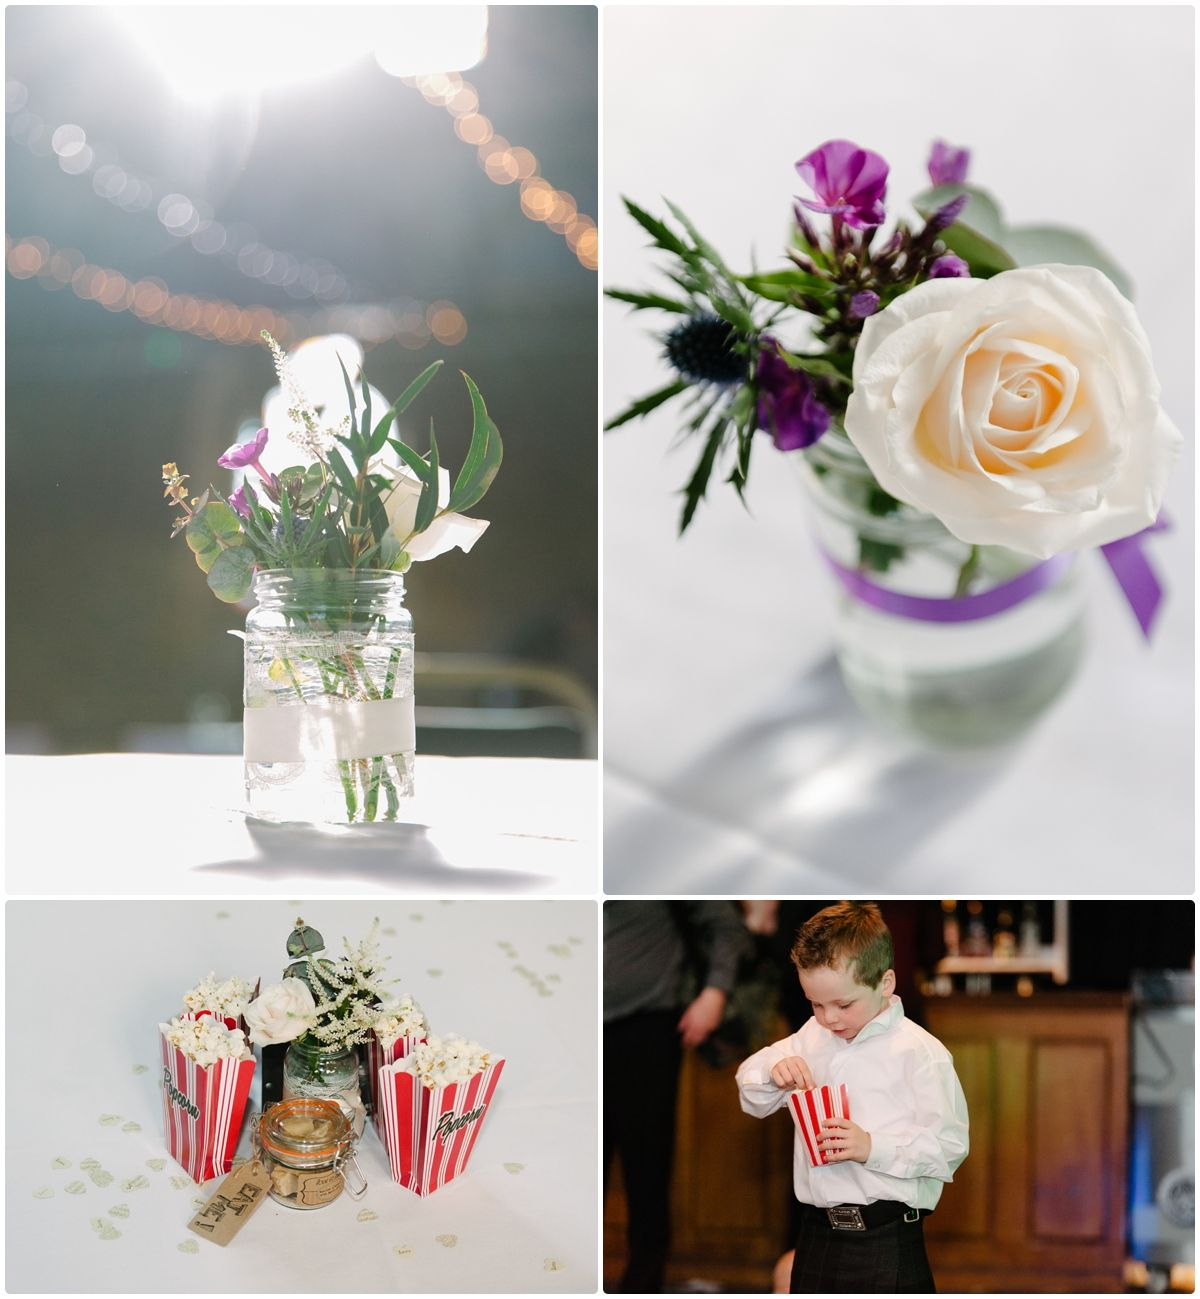 Katrina and Ronnie\'s Cottiers Theatre Wedding movie themed wedding ...